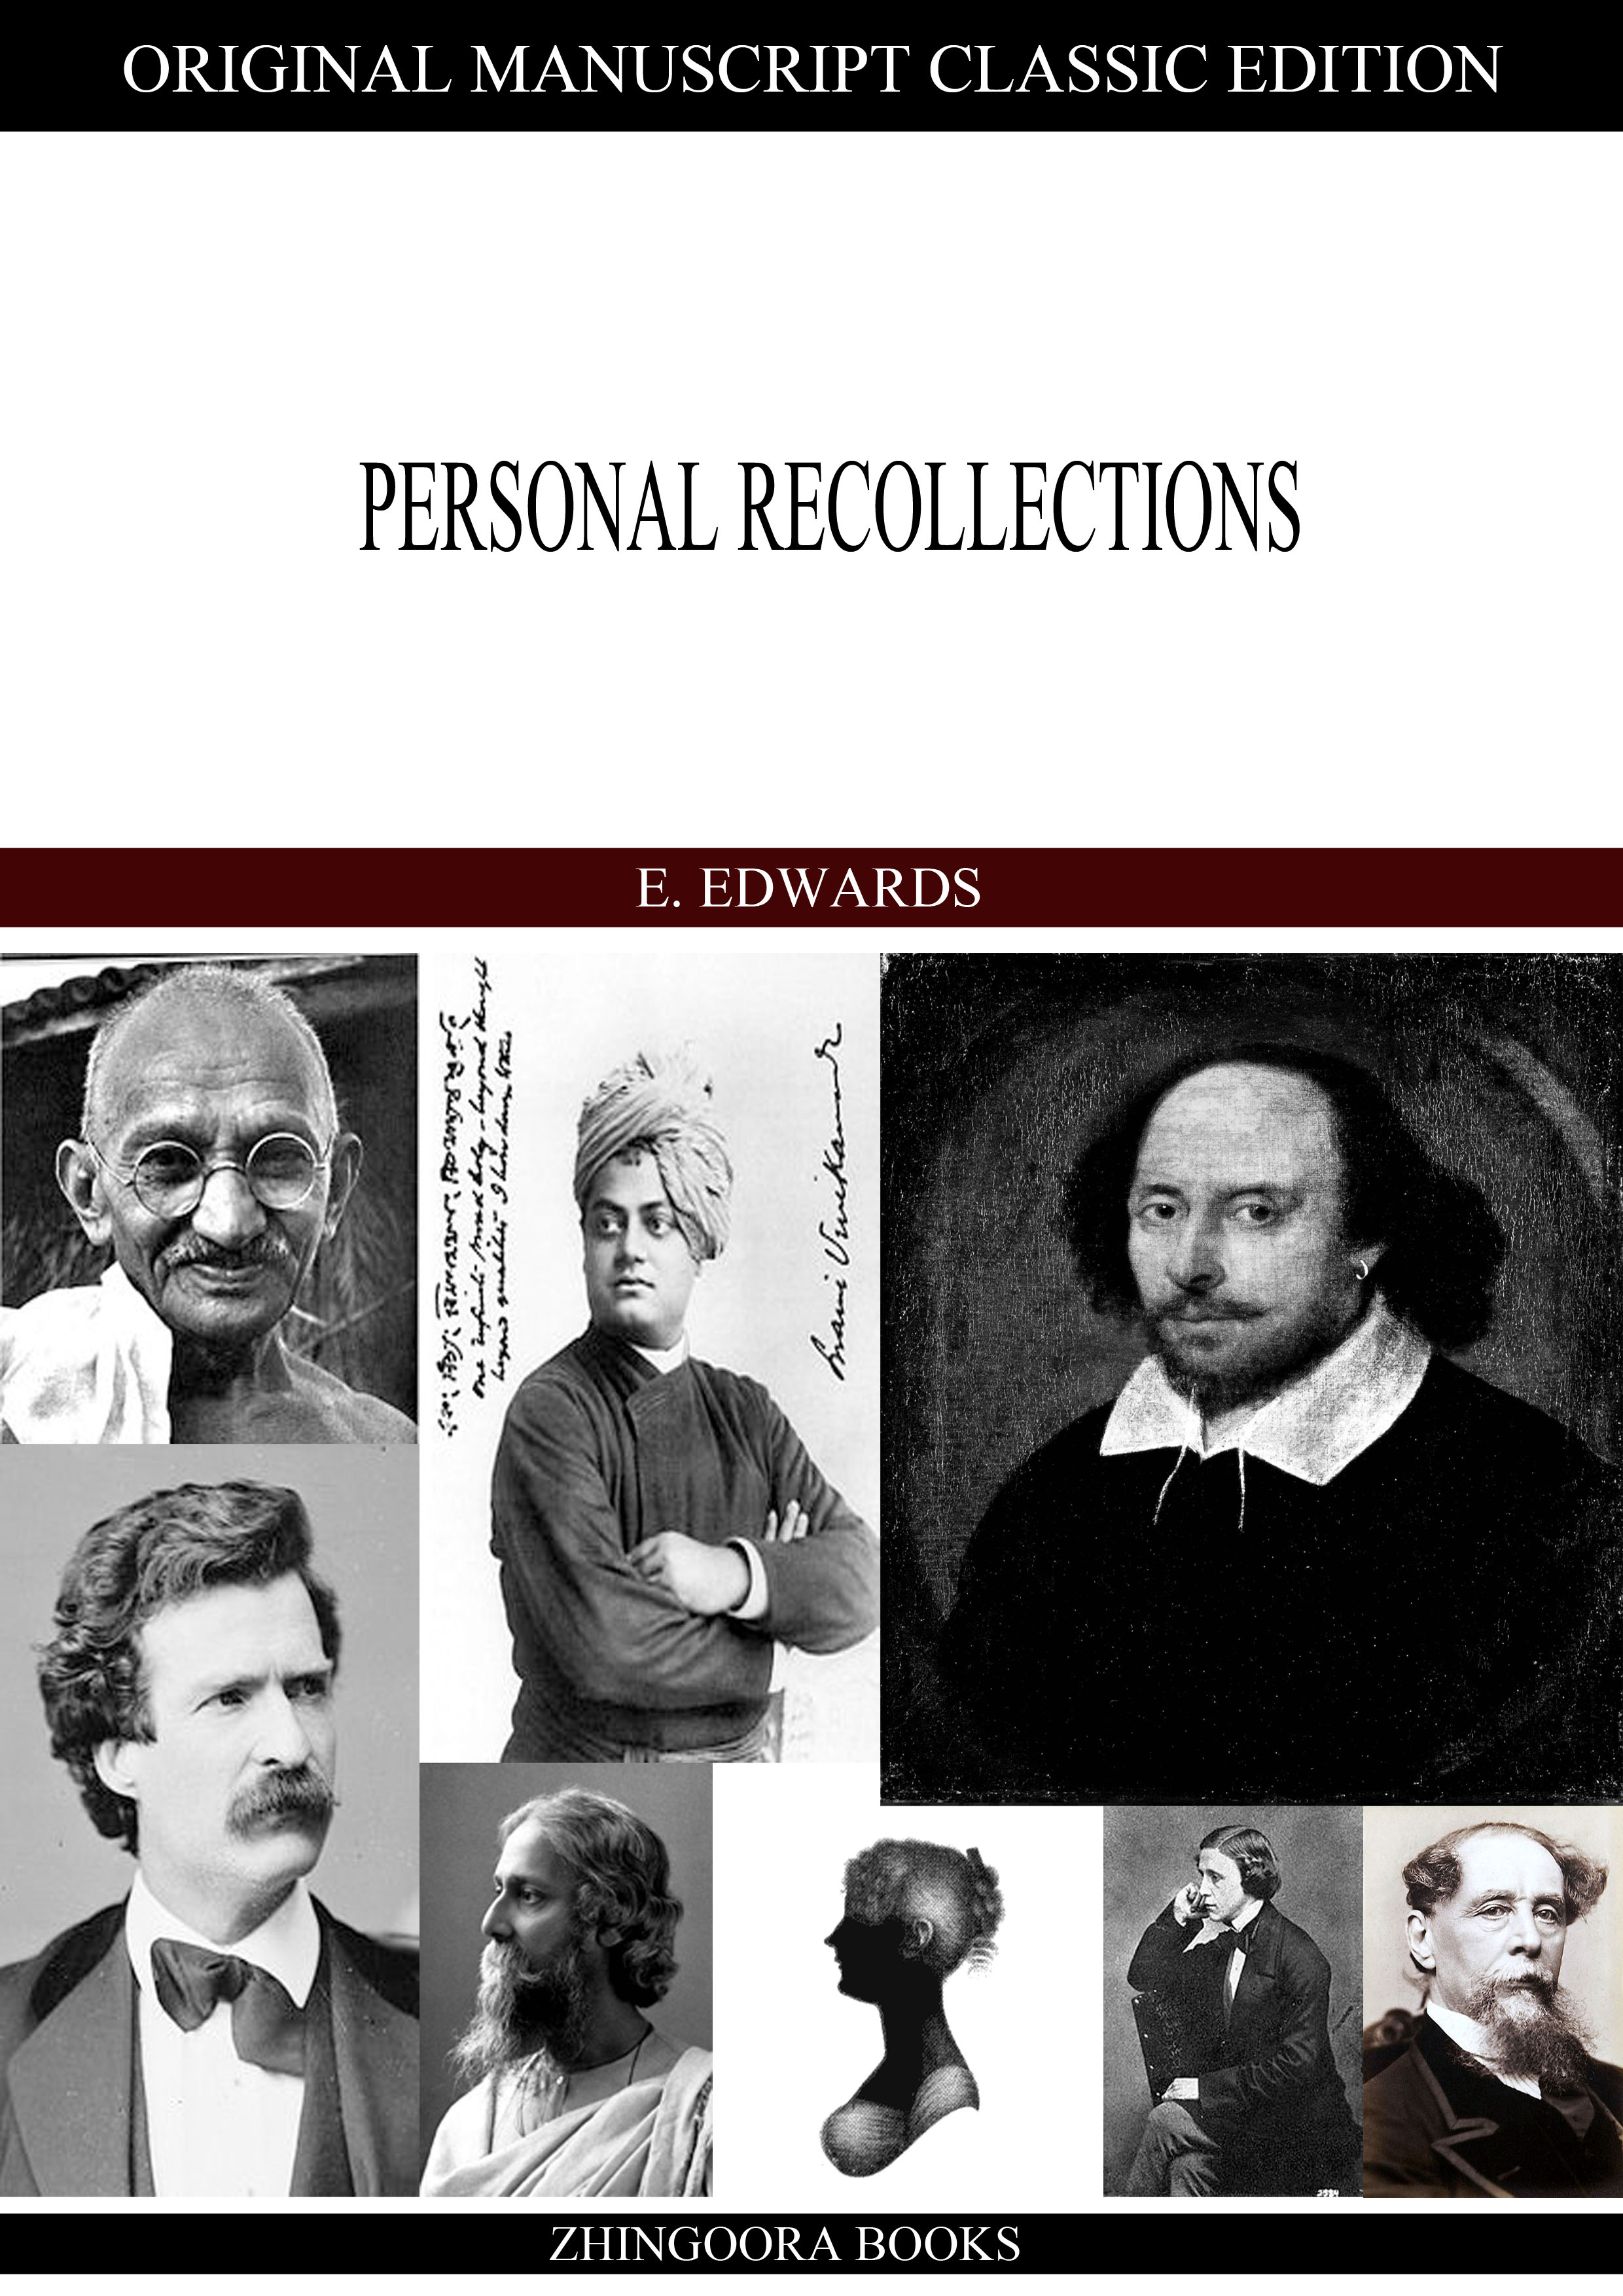 Personal Recollections Of Birmingham And Birmingham Men By: E. EDWARDS